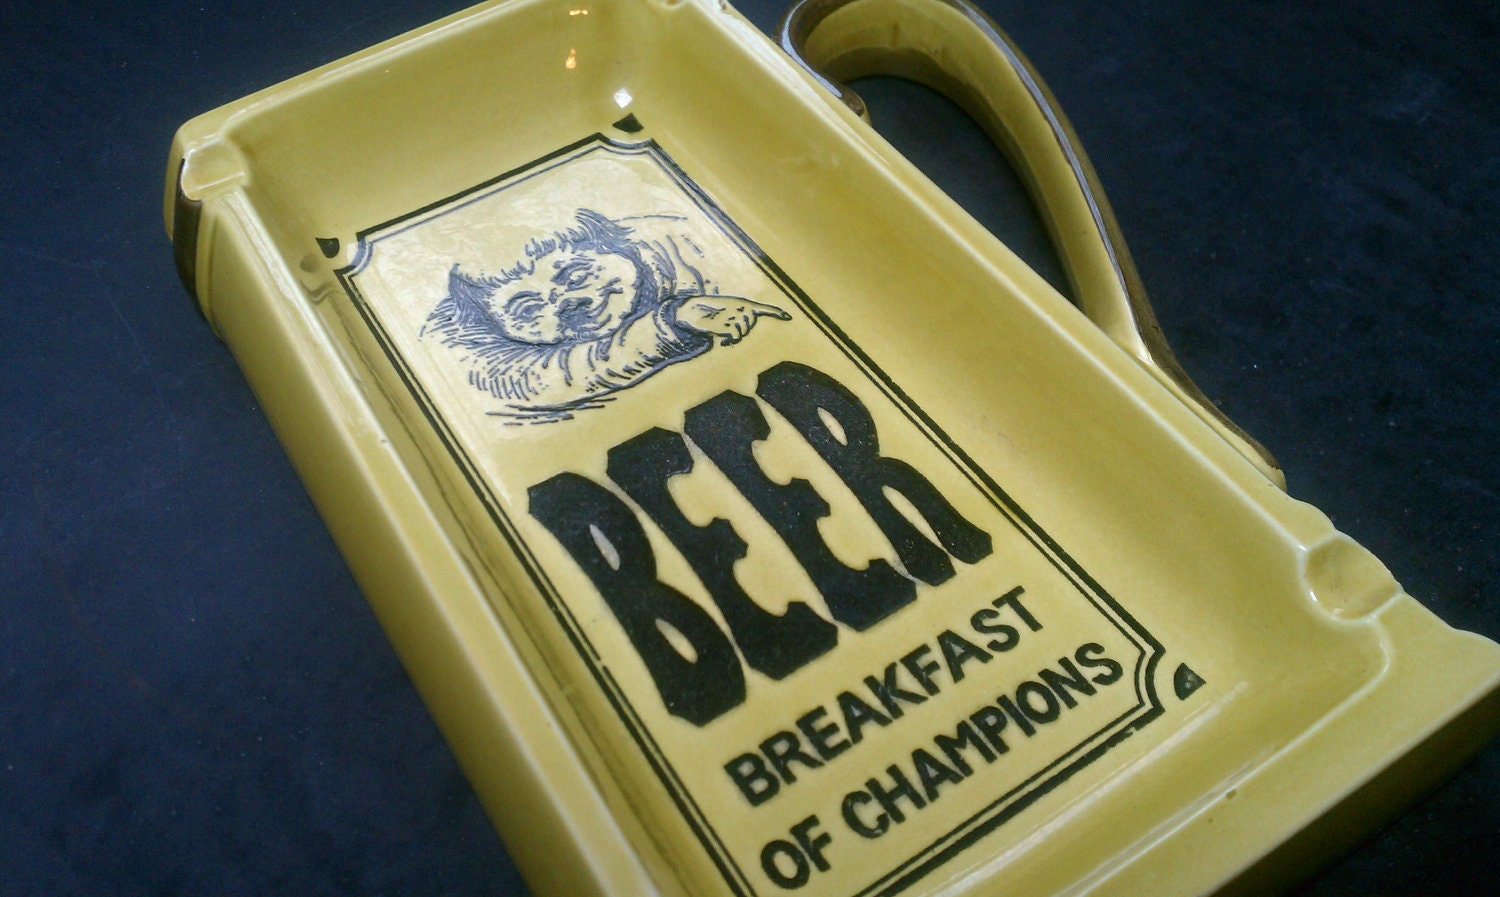 BEER, Breakfast of Champions 1970's Large Ceramic Beer Mug Ashtray - CandyCollins